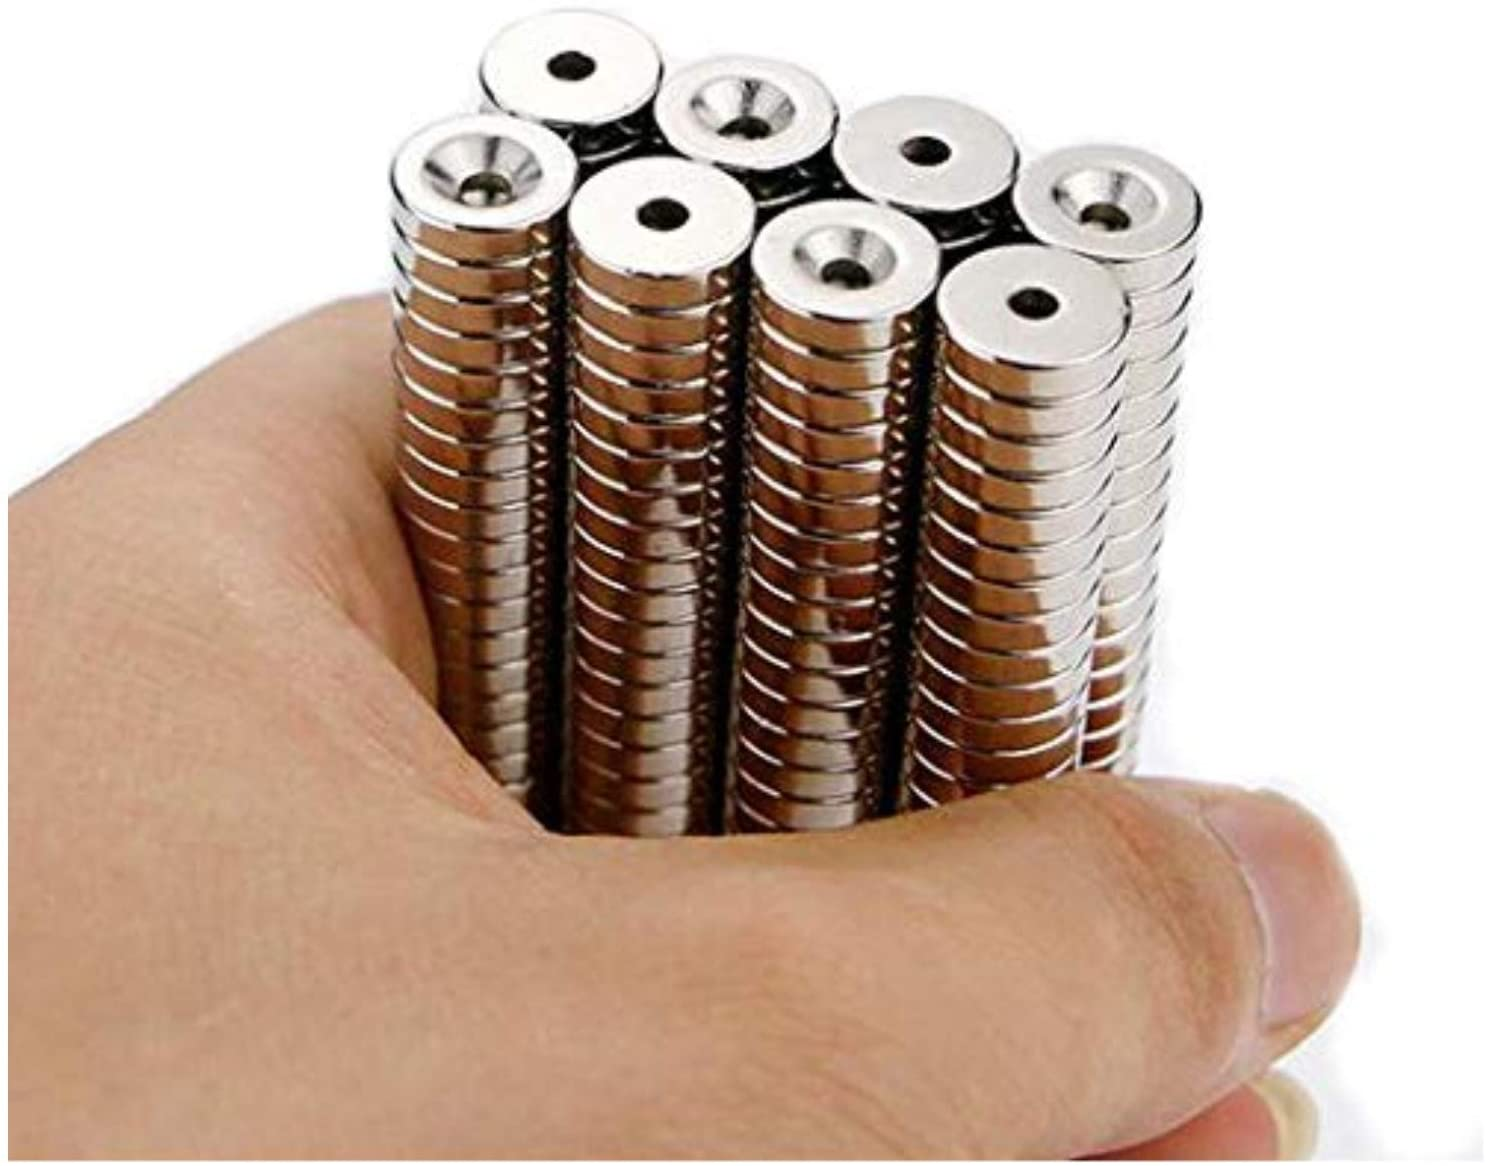 100 pieces 9x5 mm strong rare earth ndfeb neodymium magnet n35 small round super strong powerful magnetic magnets disc 100Pcs N35 Round Magnet small magnet Neodymium Magnet Permanent NdFeB Super Strong Powerful Magnets 10X1 mm